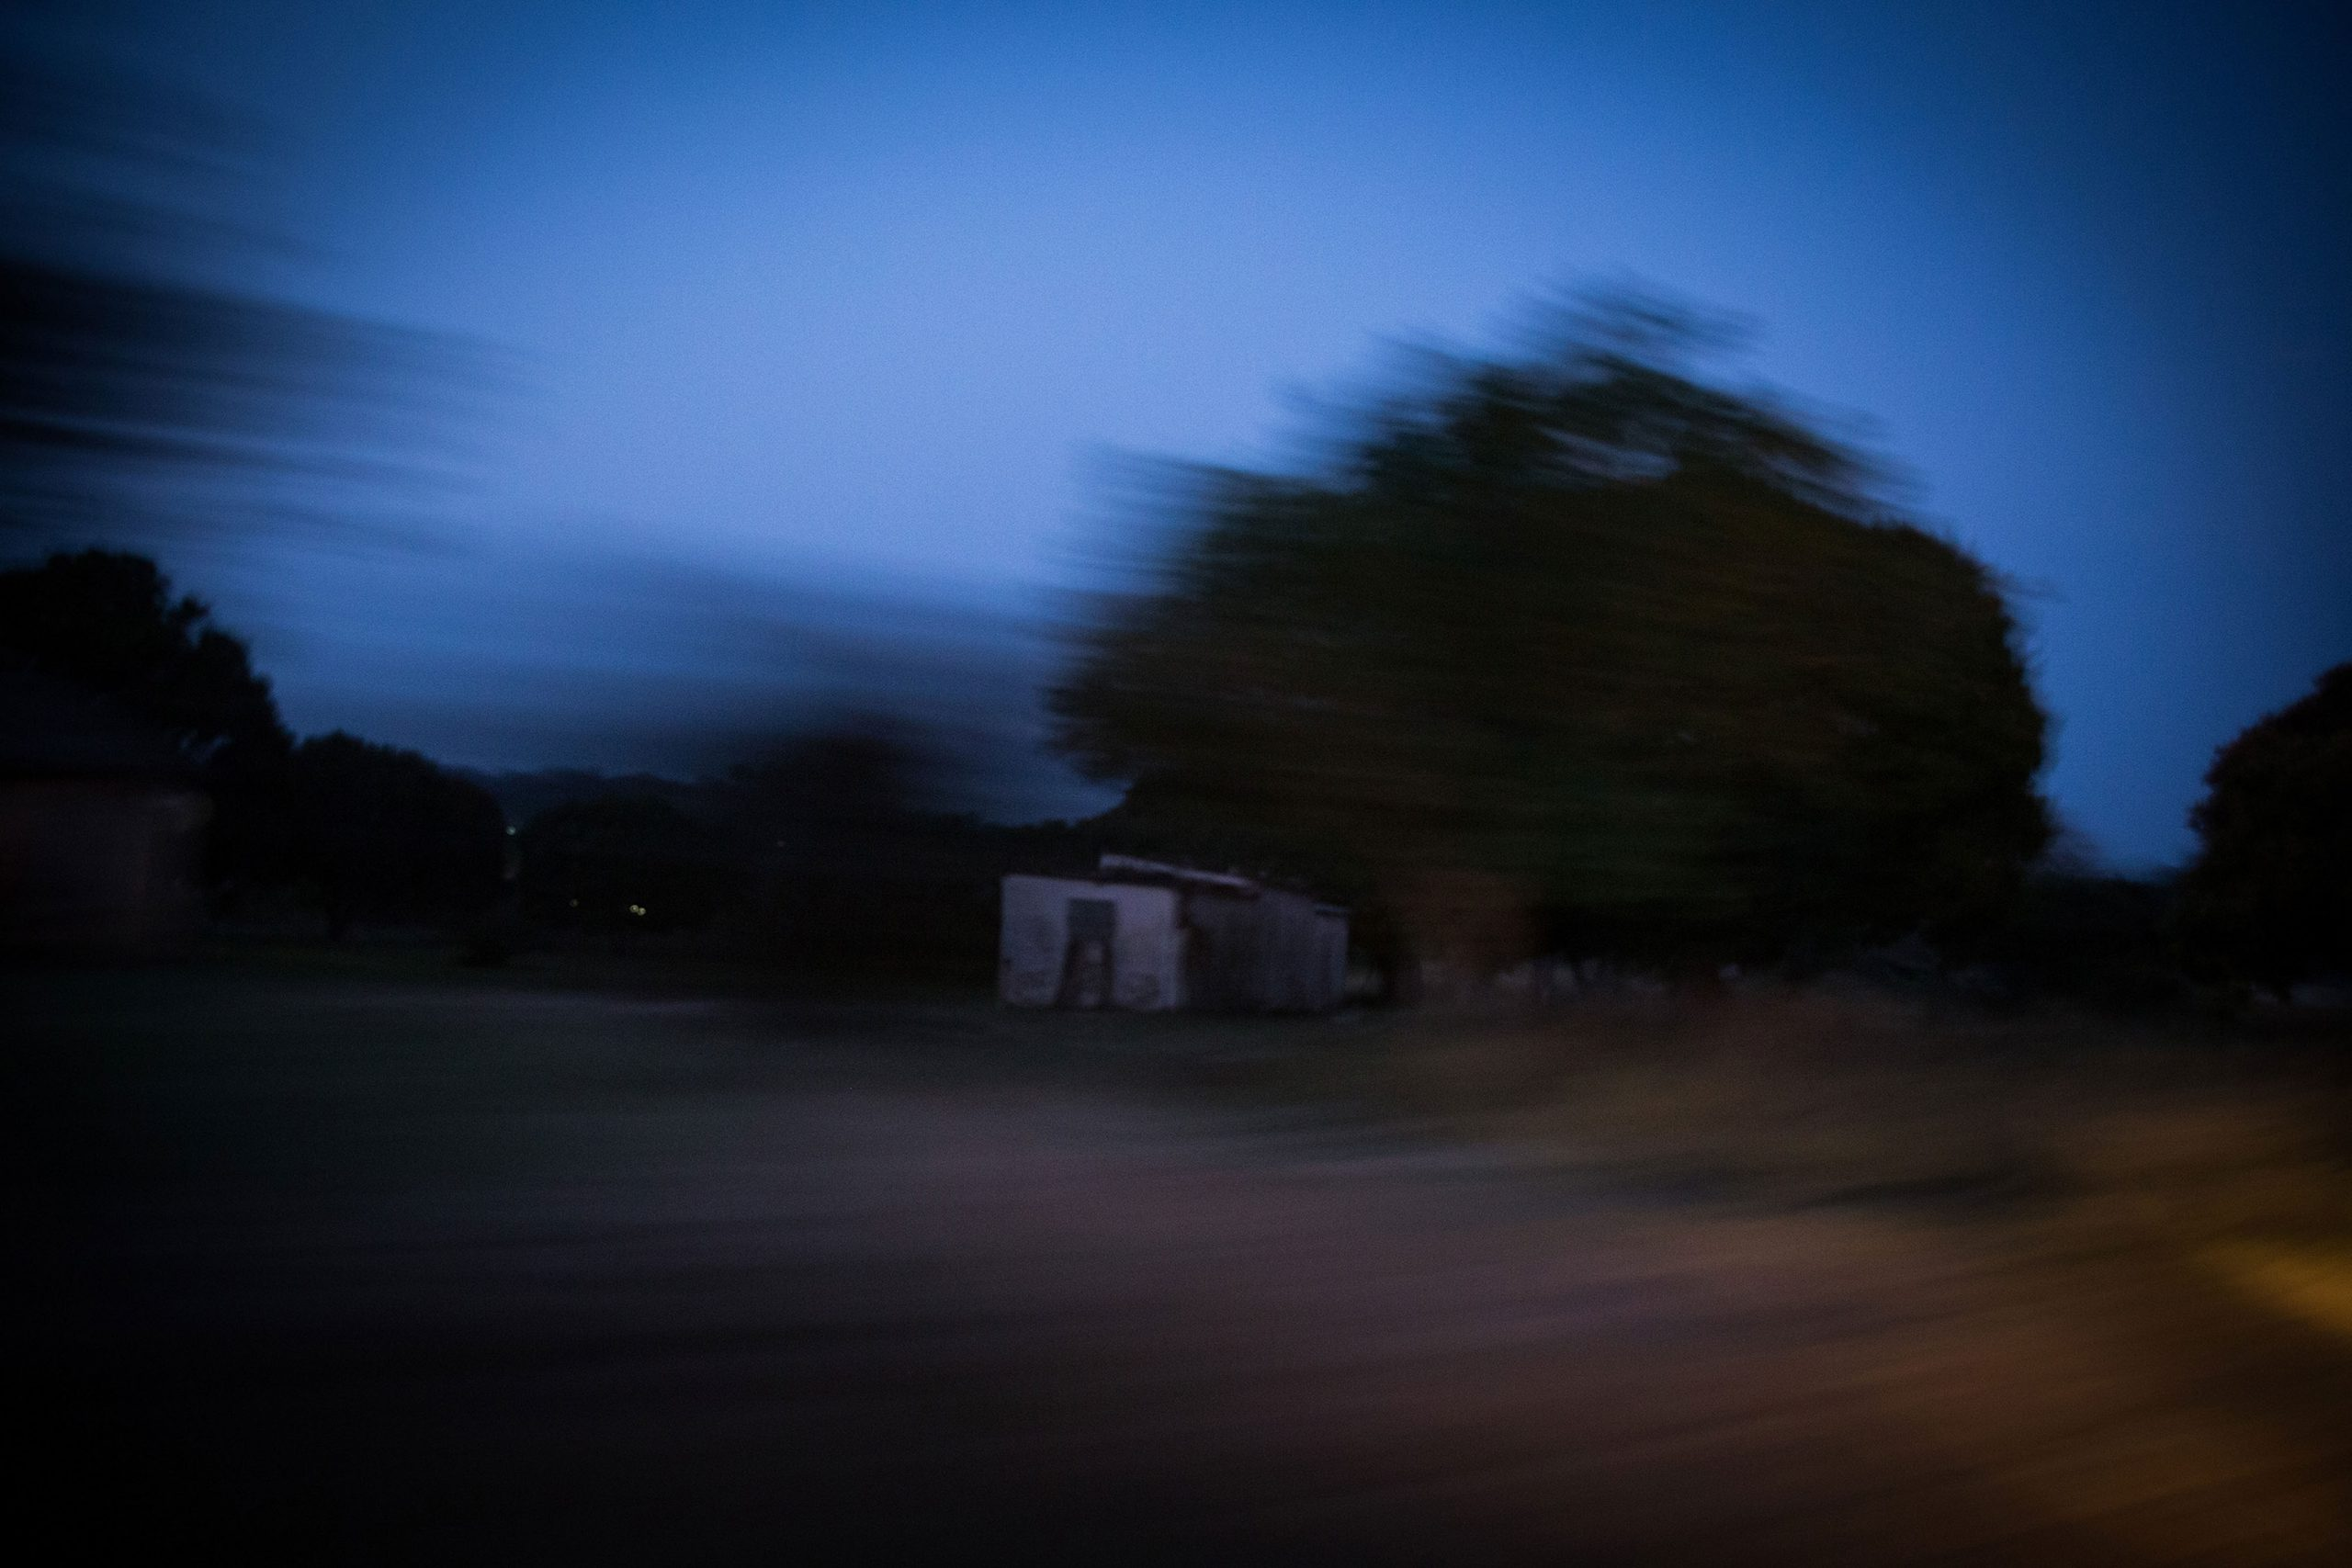 26 November 2018: Dusk descends on an abandoned property near Clare Stewart's former homestead. Stewart was an active ANC member, which drew scrutiny in an area ravaged by conflict between the ANC and the IFP.